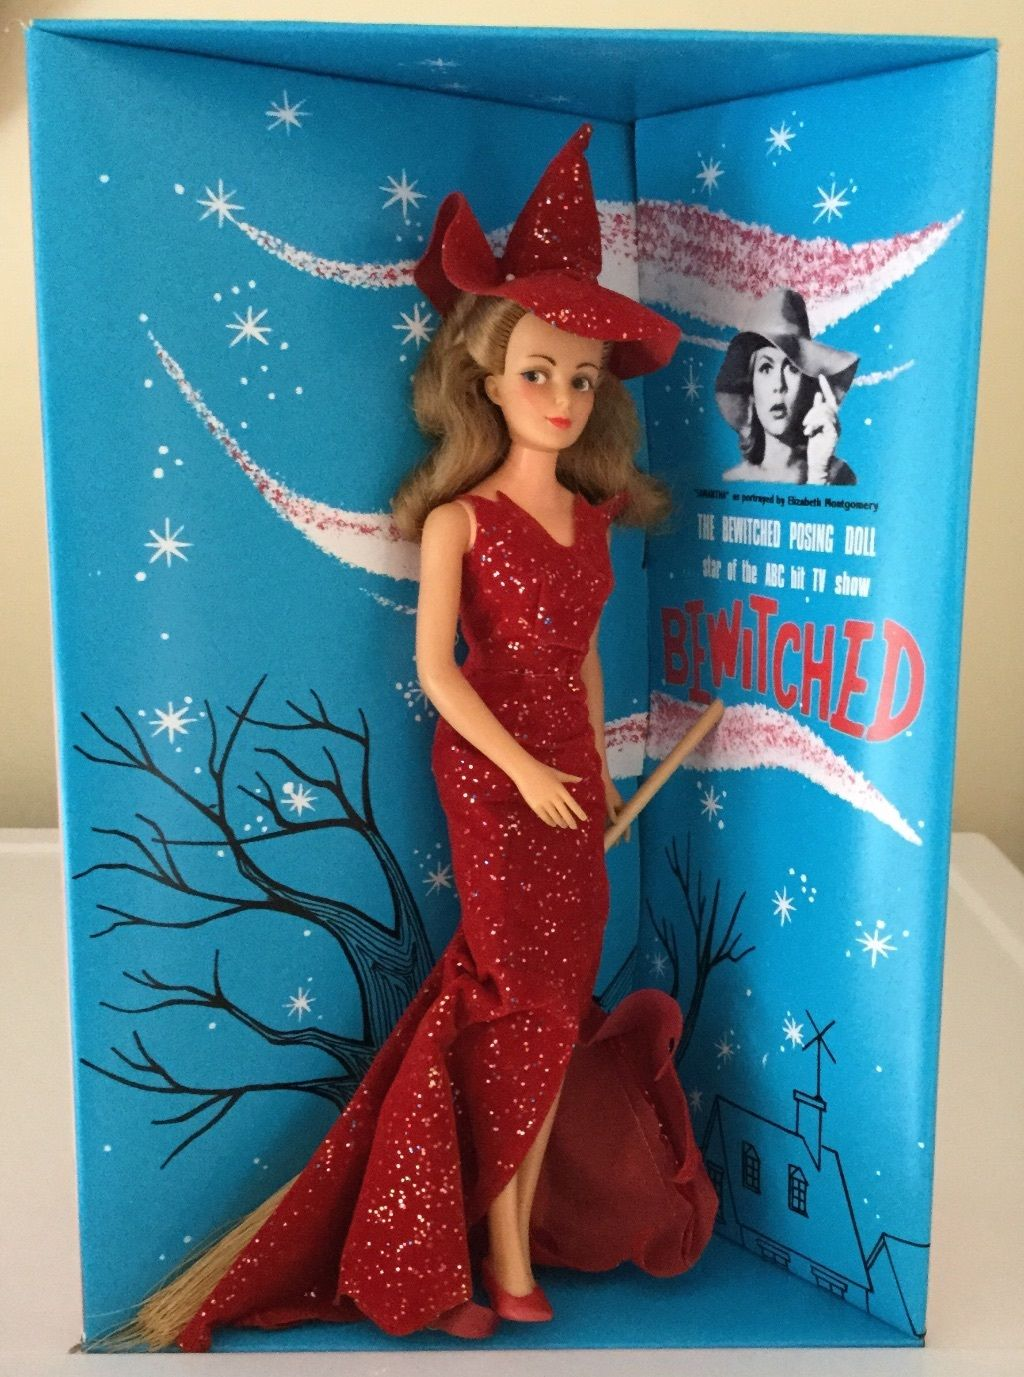 The Ideal Wardrobe: Herbie's World Of Kitsch & Toys: 1965 Bewitched